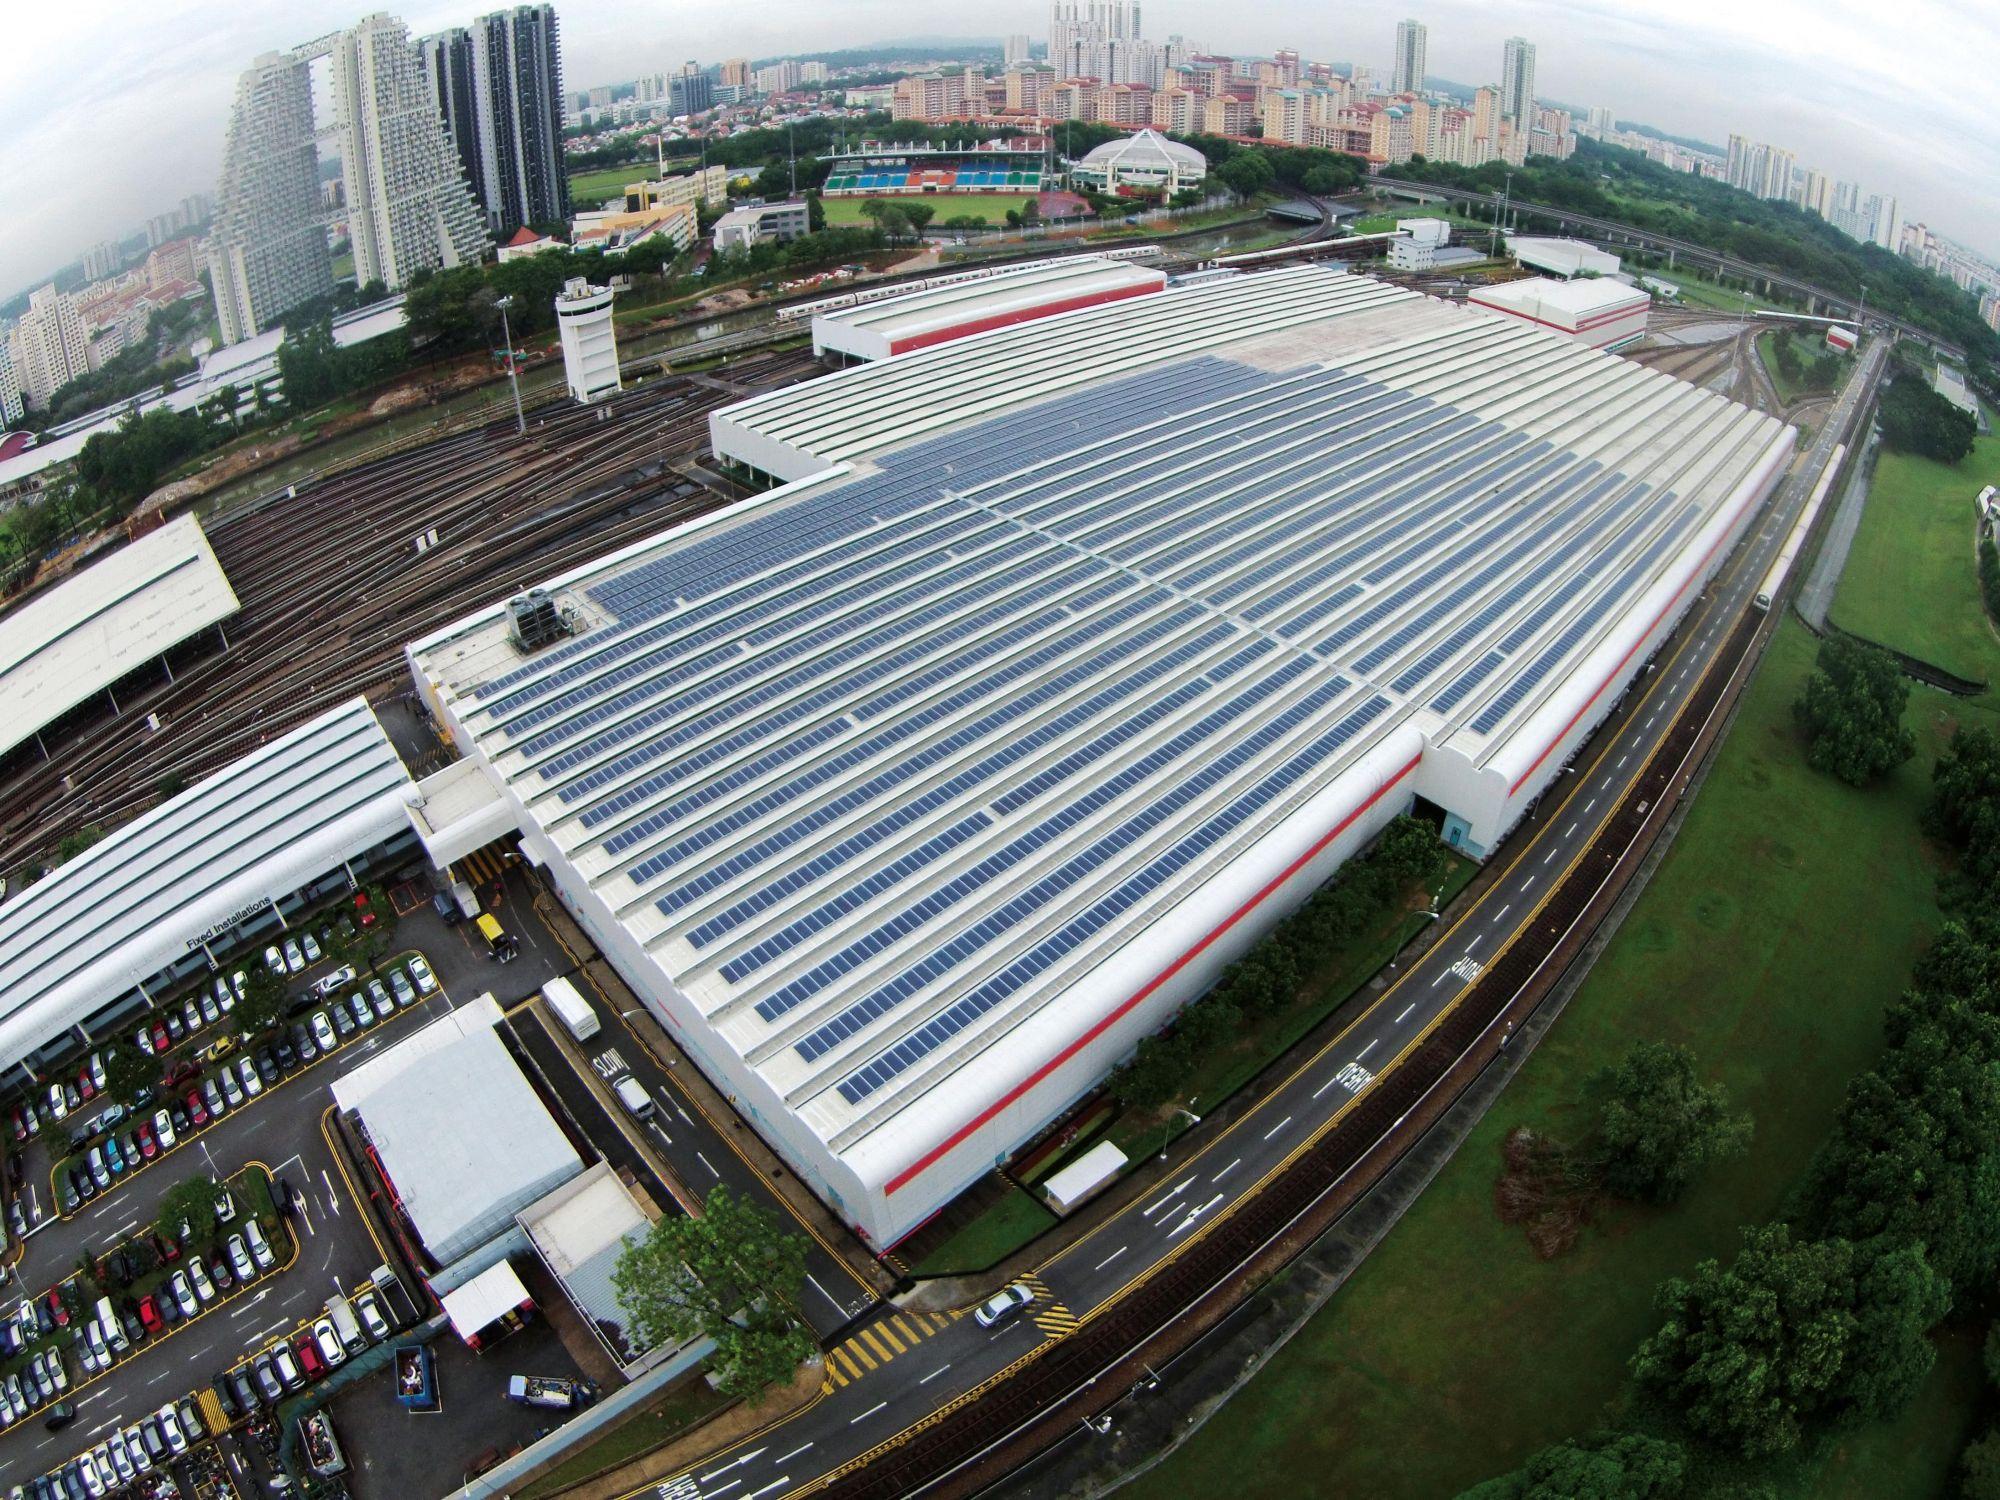 Train of Thought: Rail operator SMRT enlisted the services of Sunseap to reduce its carbon footprint by installing 10,000sqm of solar panels at its Bishan Depot.